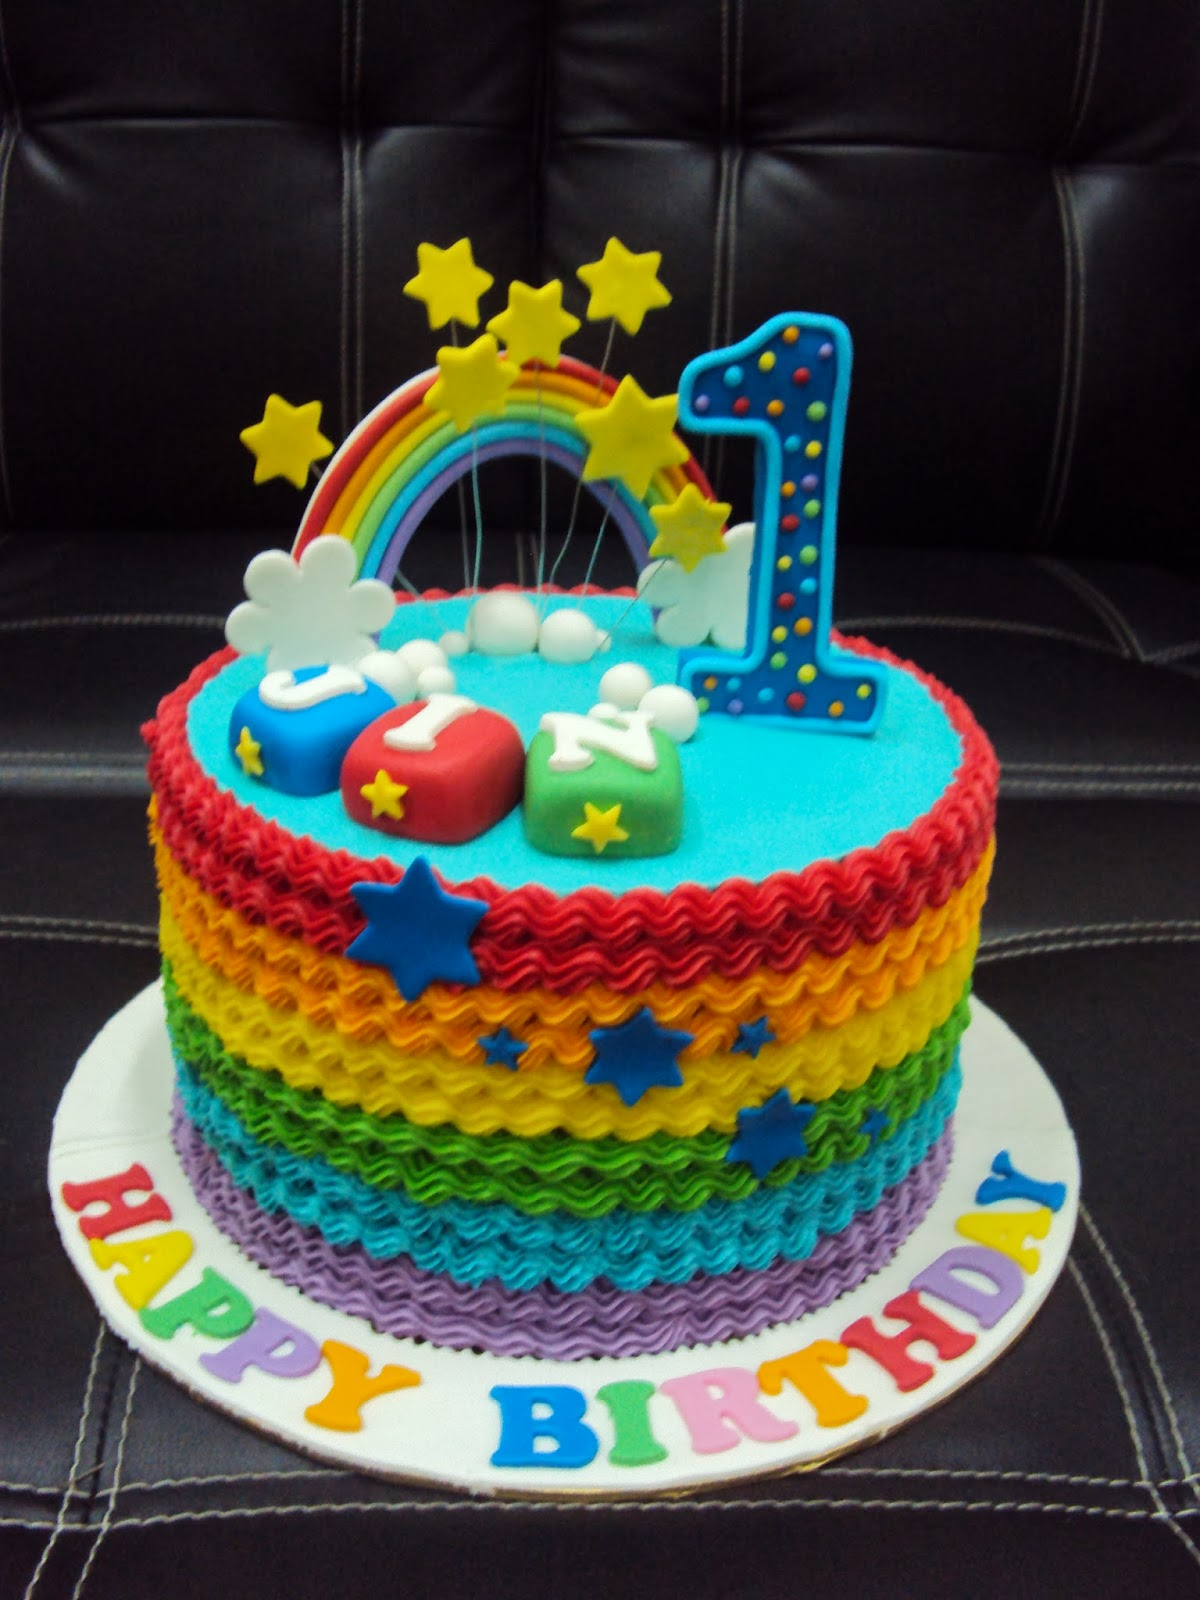 Birthday Cake Ideas Rainbow : L mis Cakes & Cupcakes Ipoh Contact : 012-5991233 ...